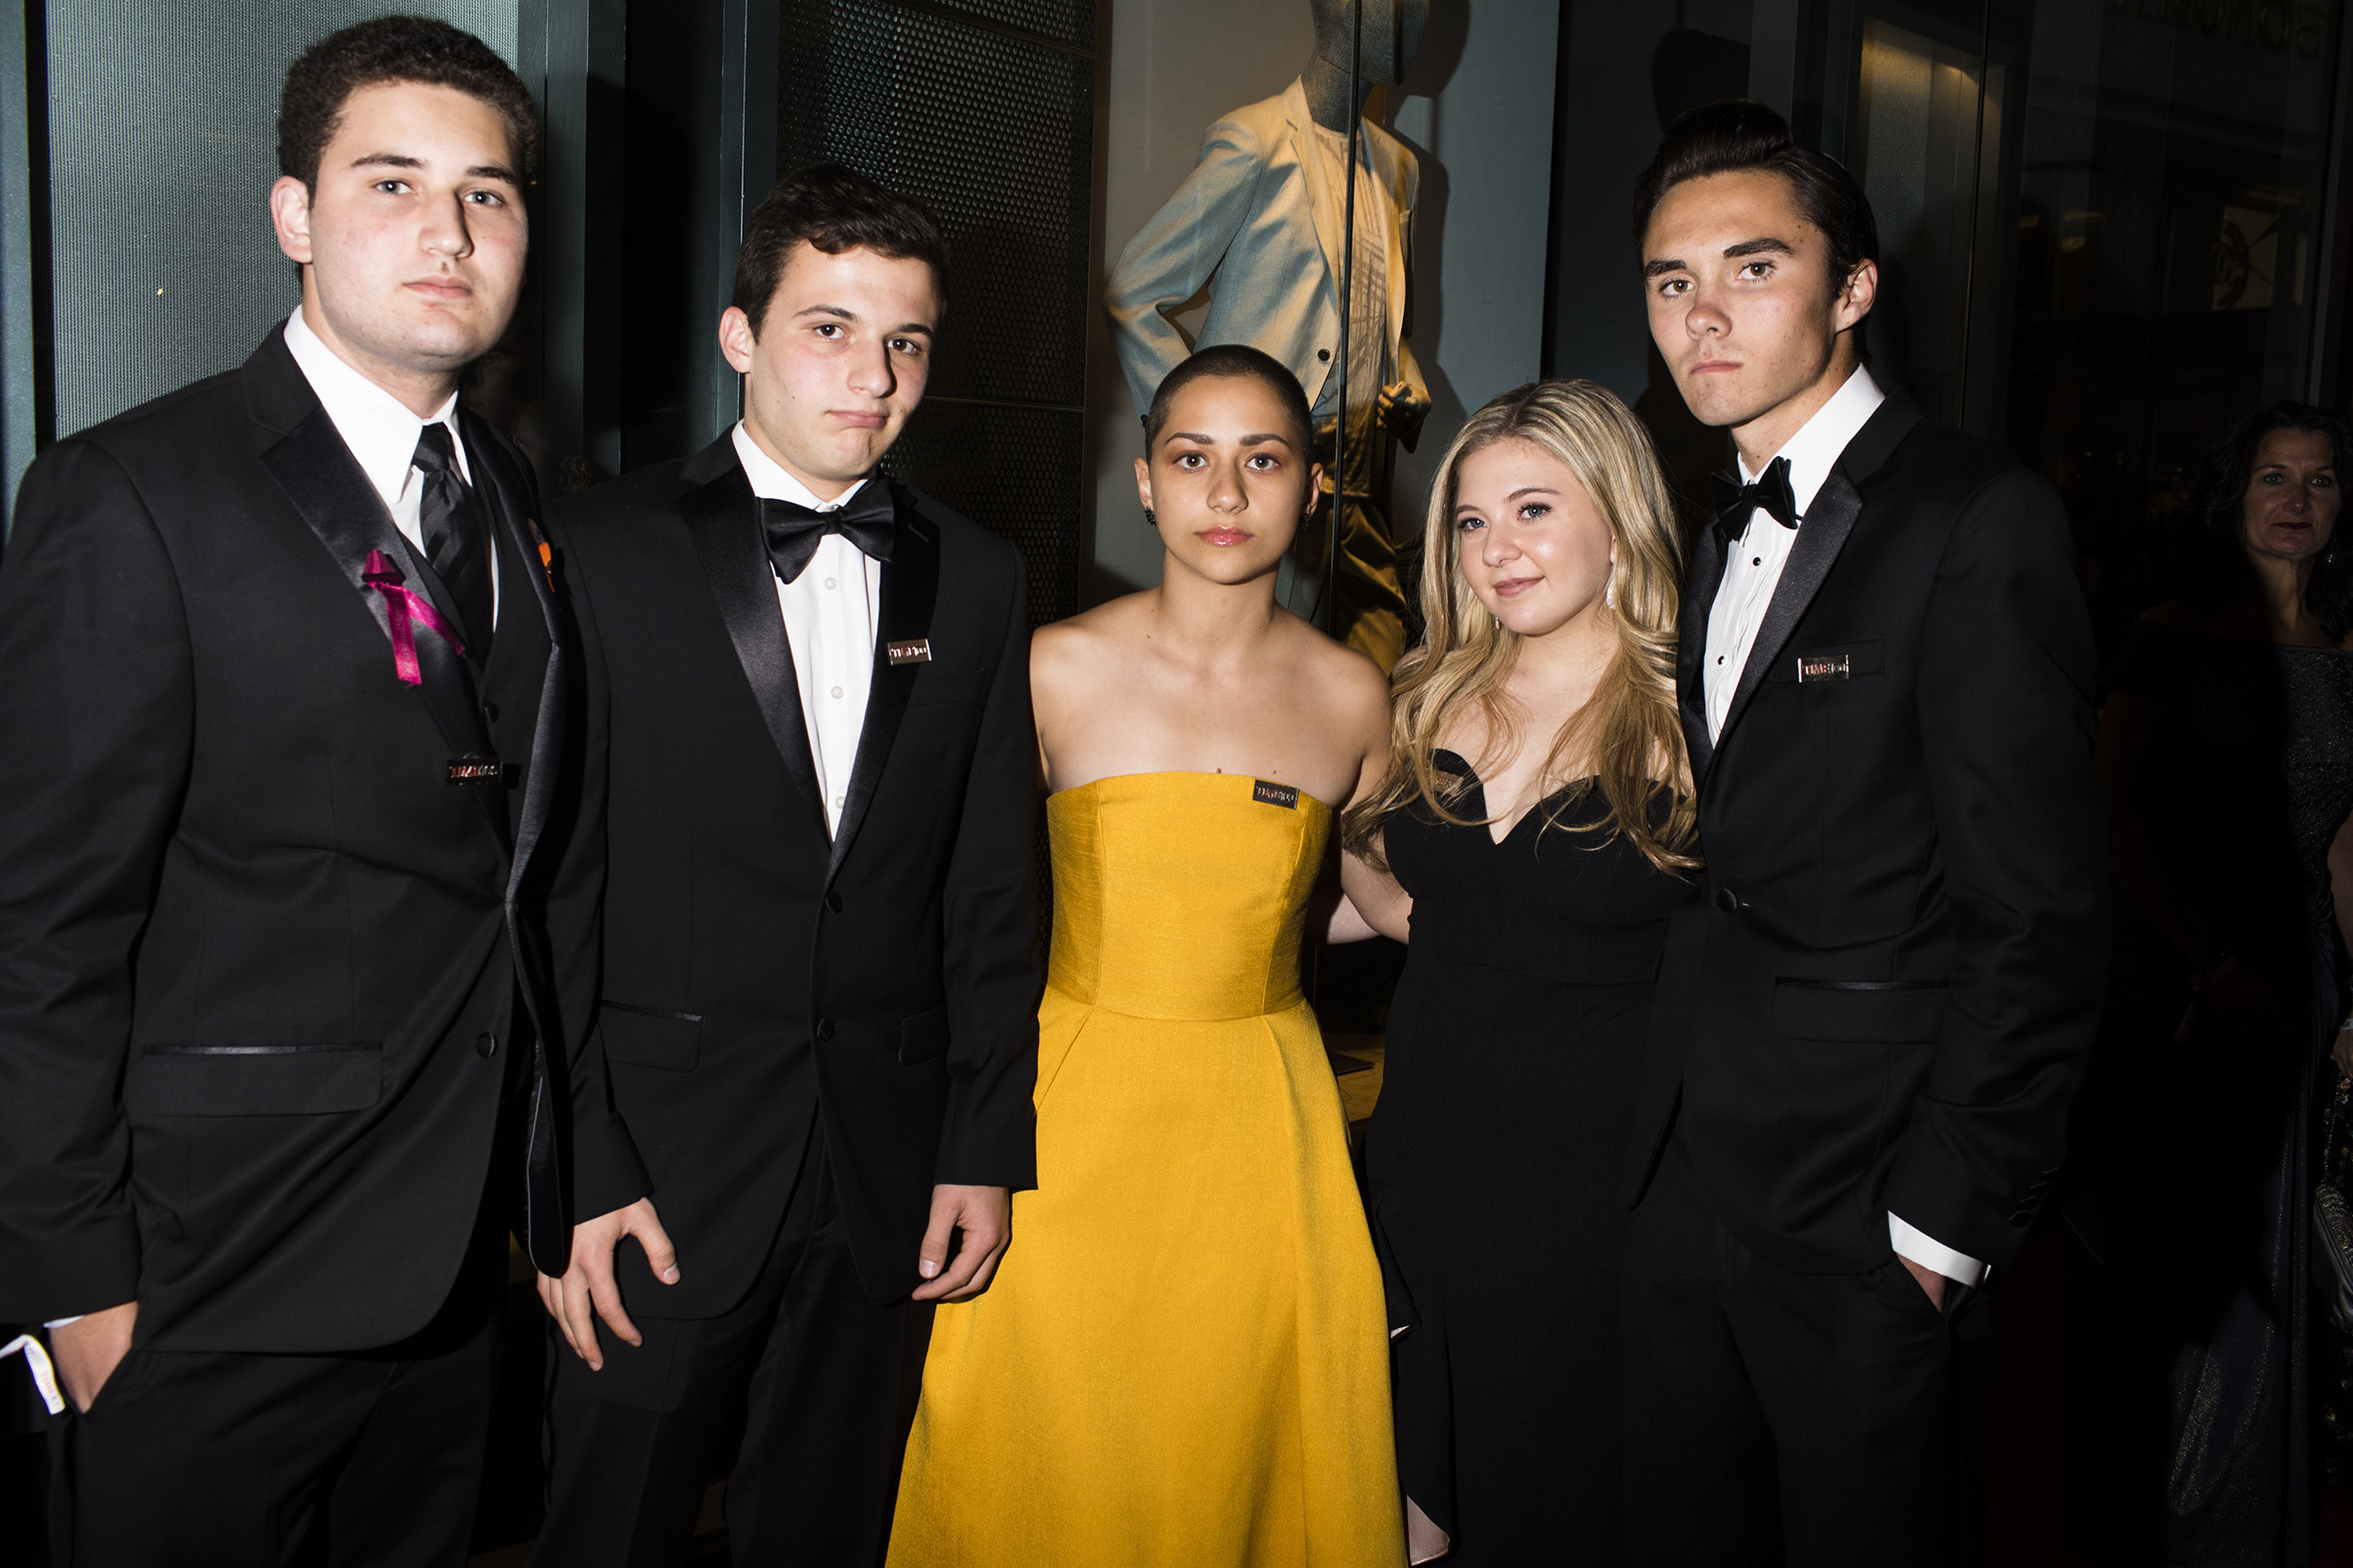 Parkland Activists Alex Wind, Cameron Kasky, Emma Gonzalez, Jaclyn Corin, and David Hogg at the Time 100 Gala at Jazz at Lincoln Center on April 24, 2018 in New York City.